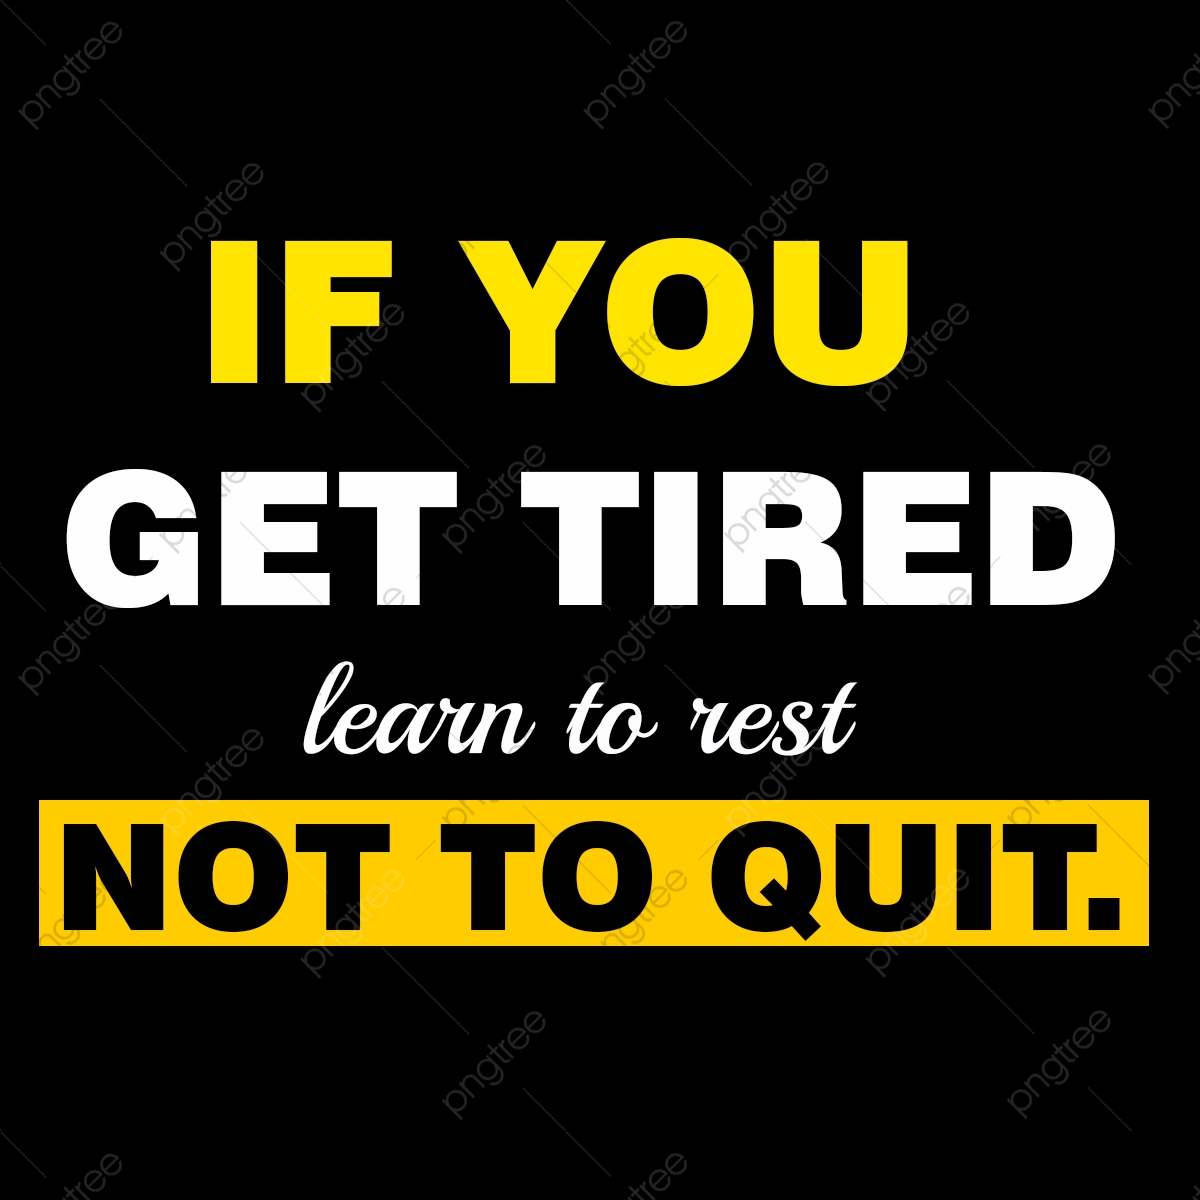 Not To Quit Fitness Motivational Image Quote Font Effect Psd For Free Download